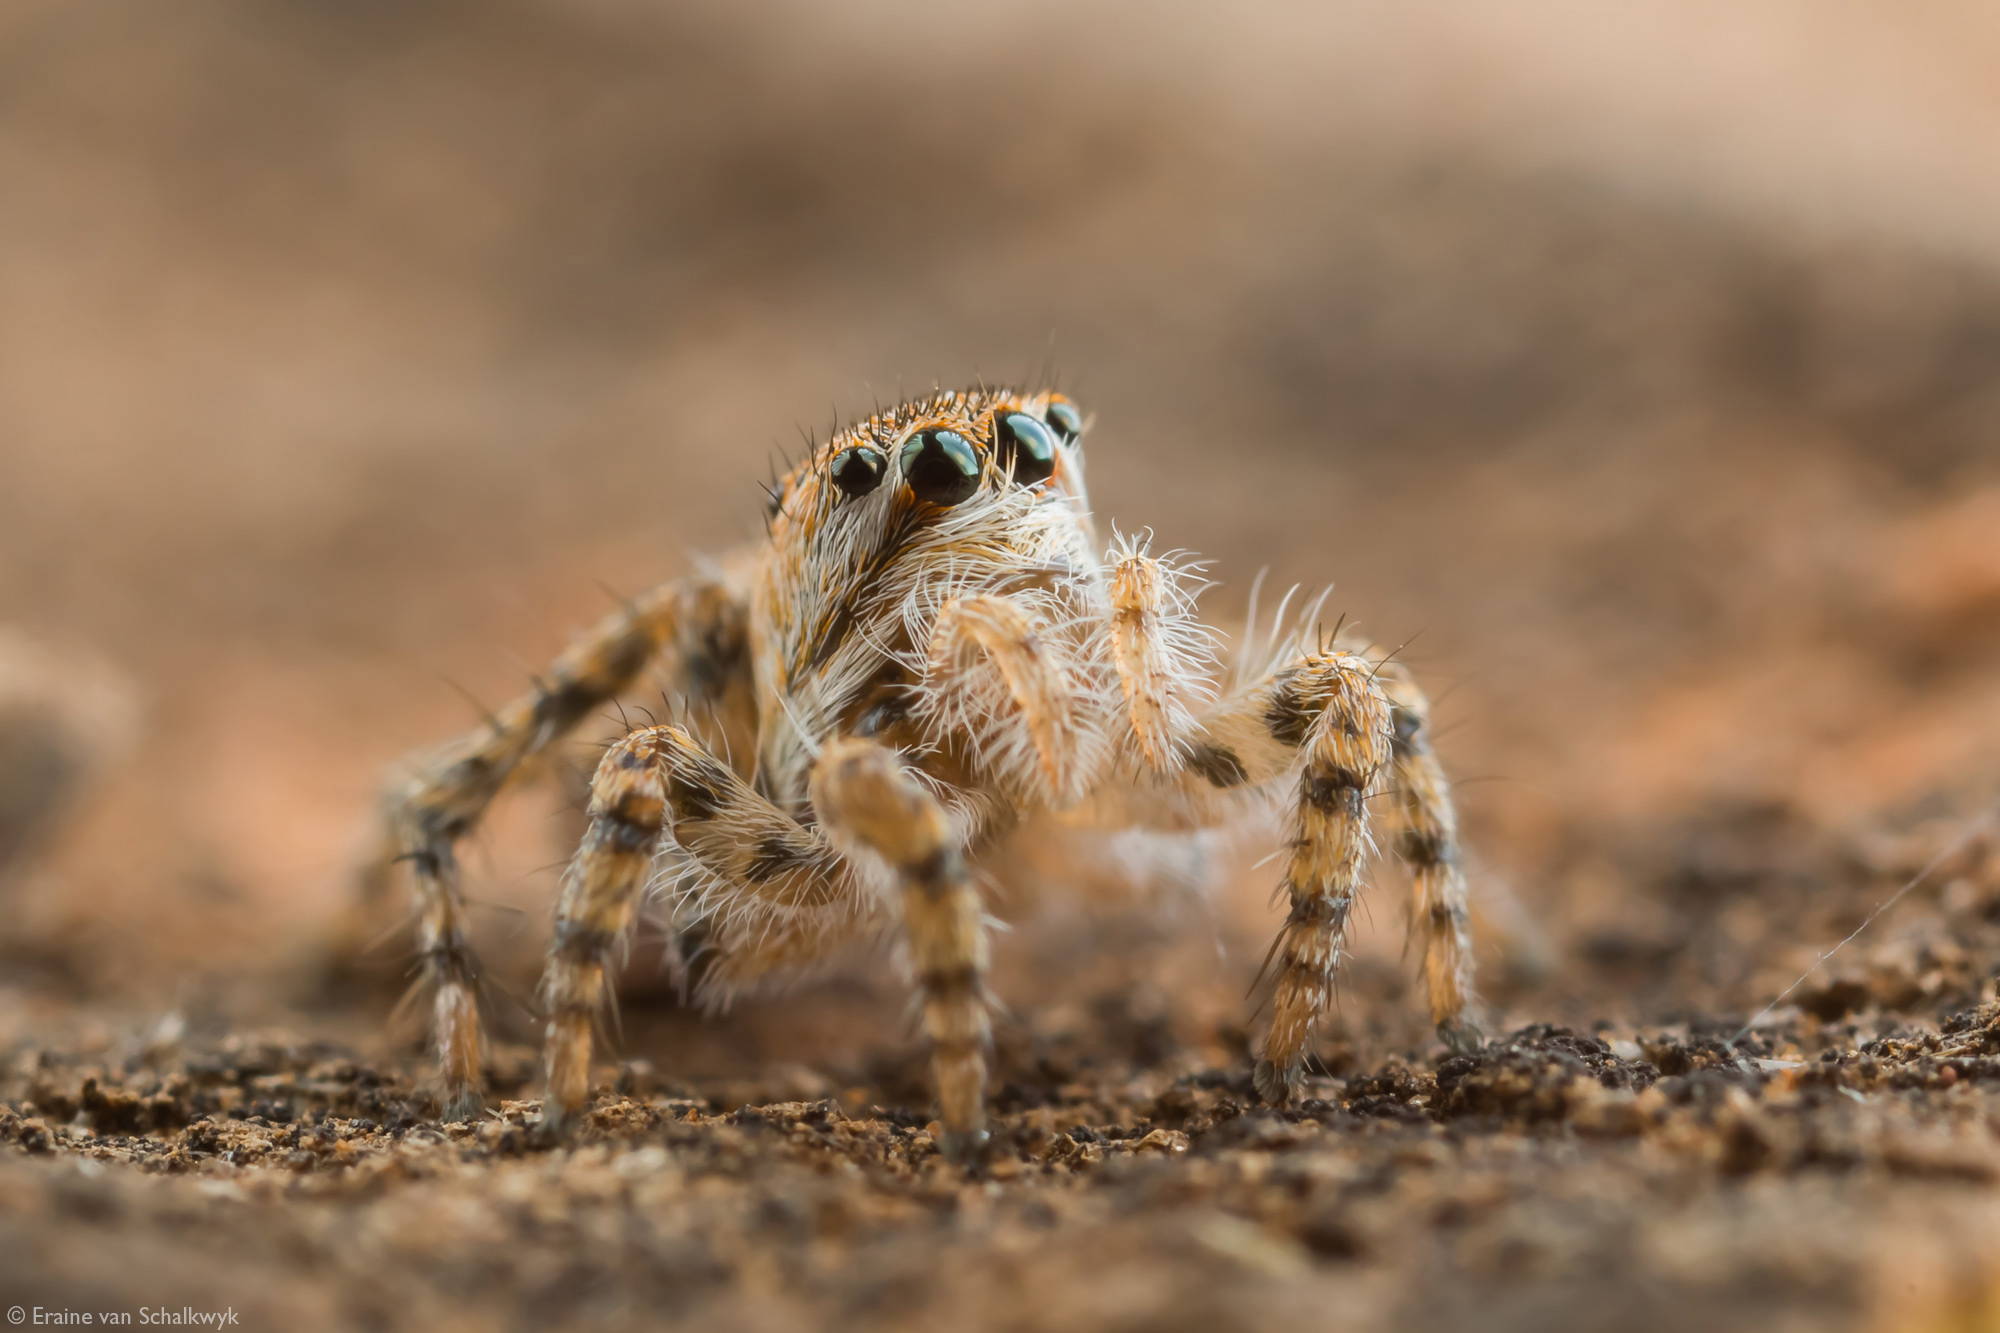 Jumping spider, macro photography, arachnid, Klaserie Private Nature Reserve, South Africa